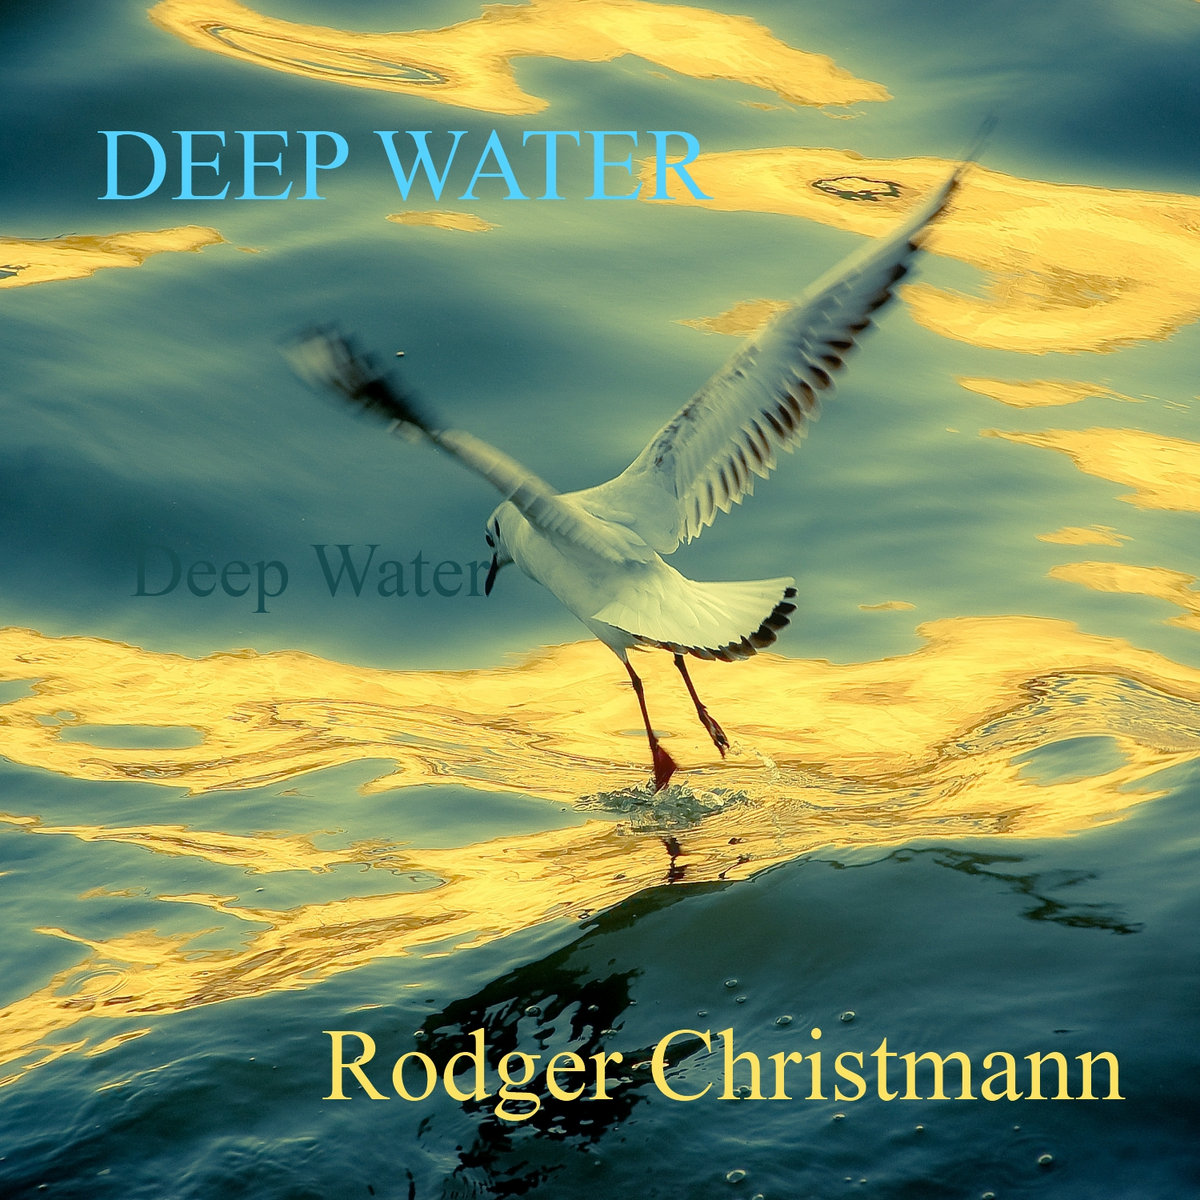 Deep Water by Rodger Christmann